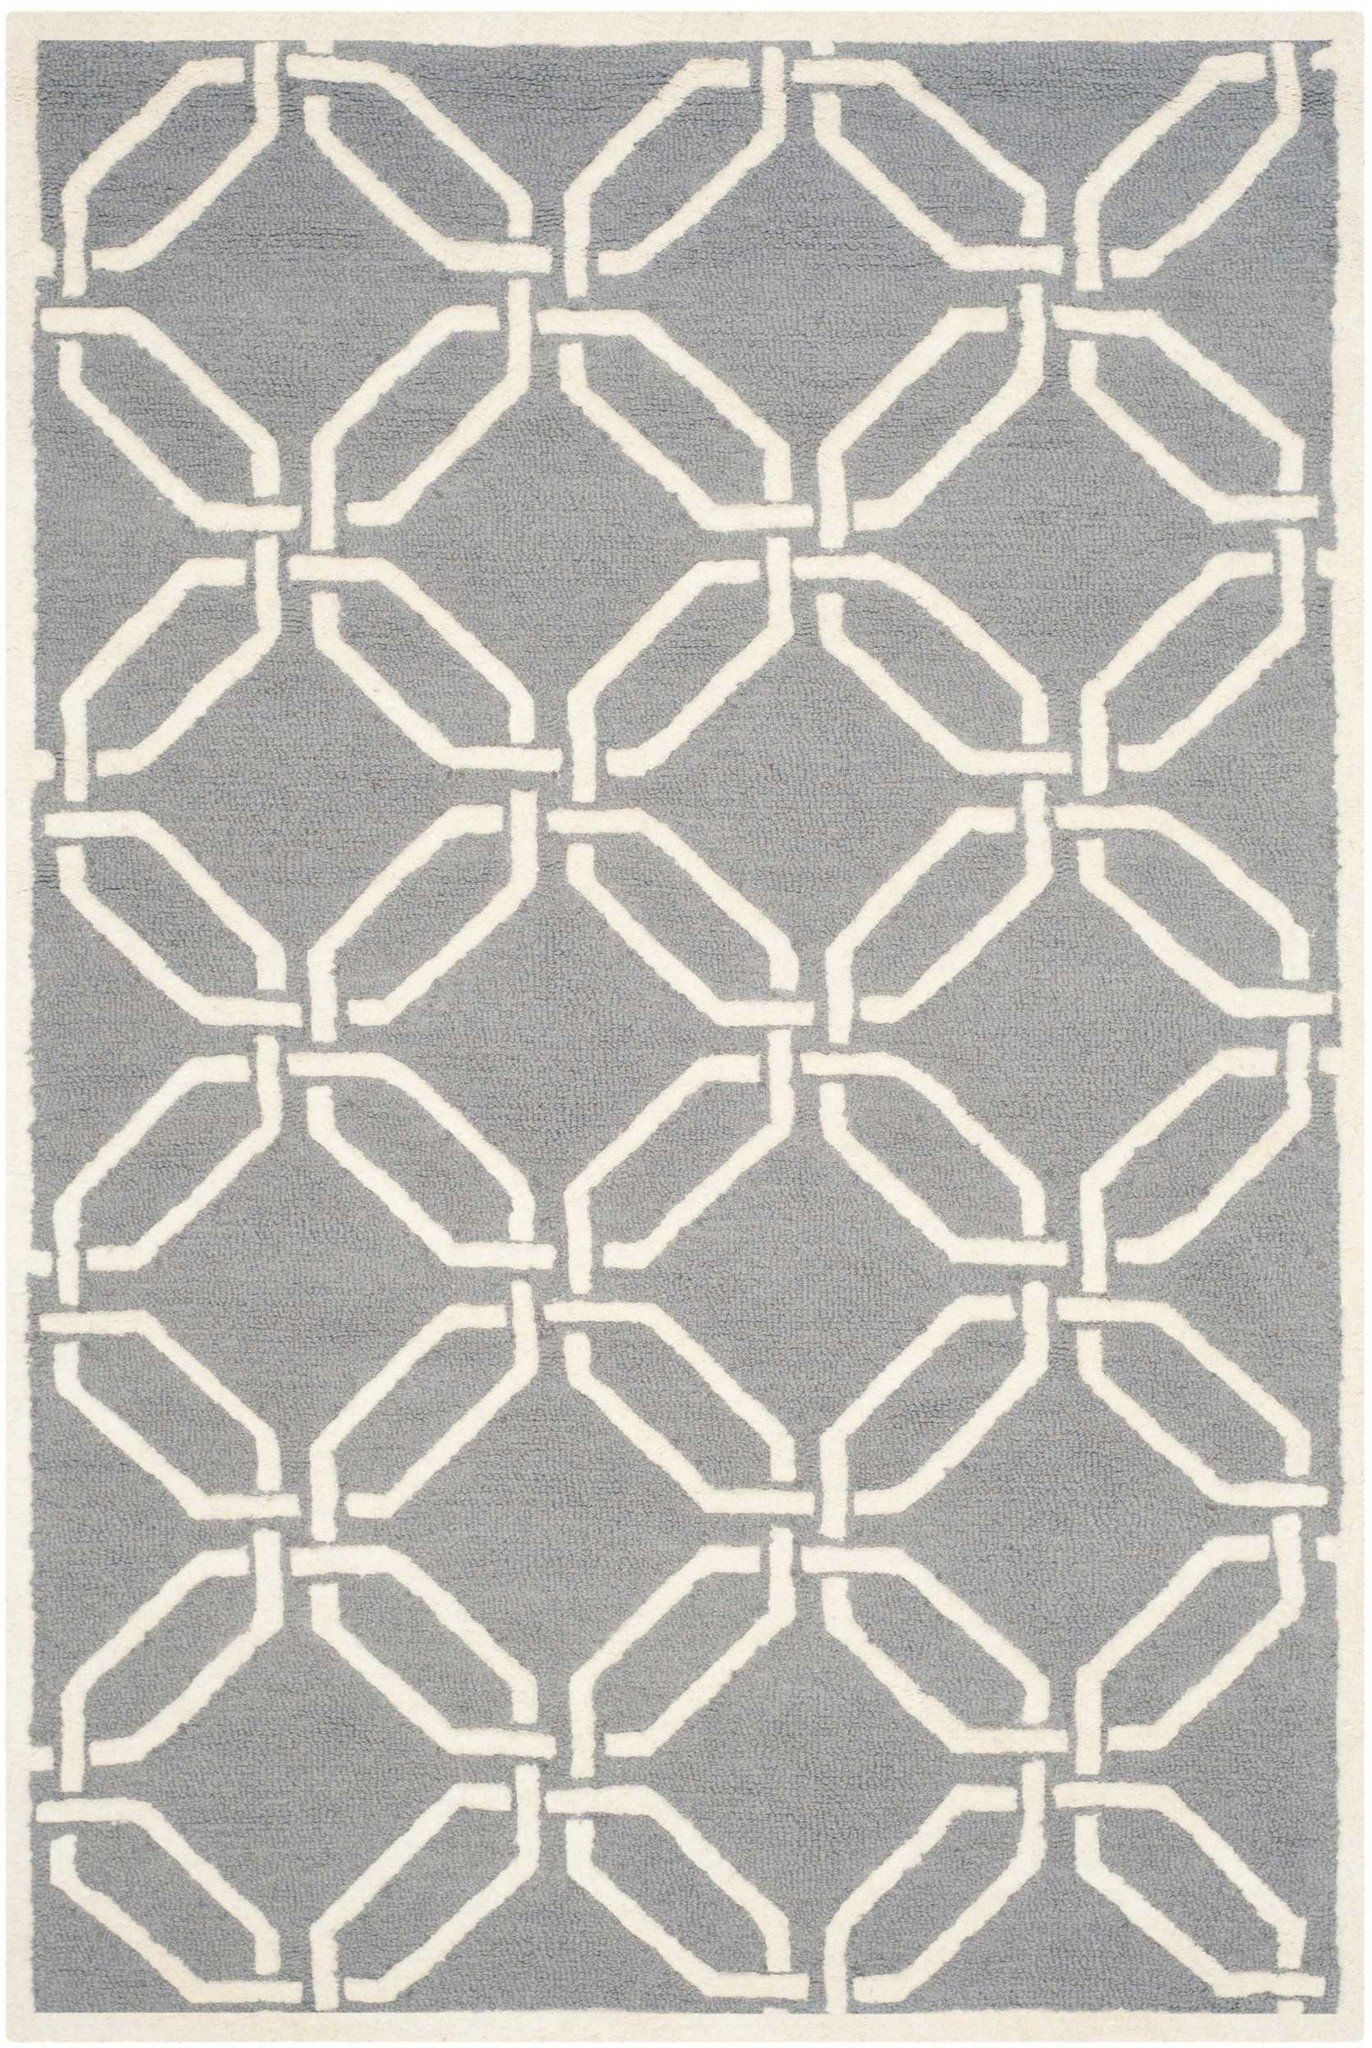 Safavieh Cambridge 9 X 12 Morgan Wool Rug In Silver Ivory Area